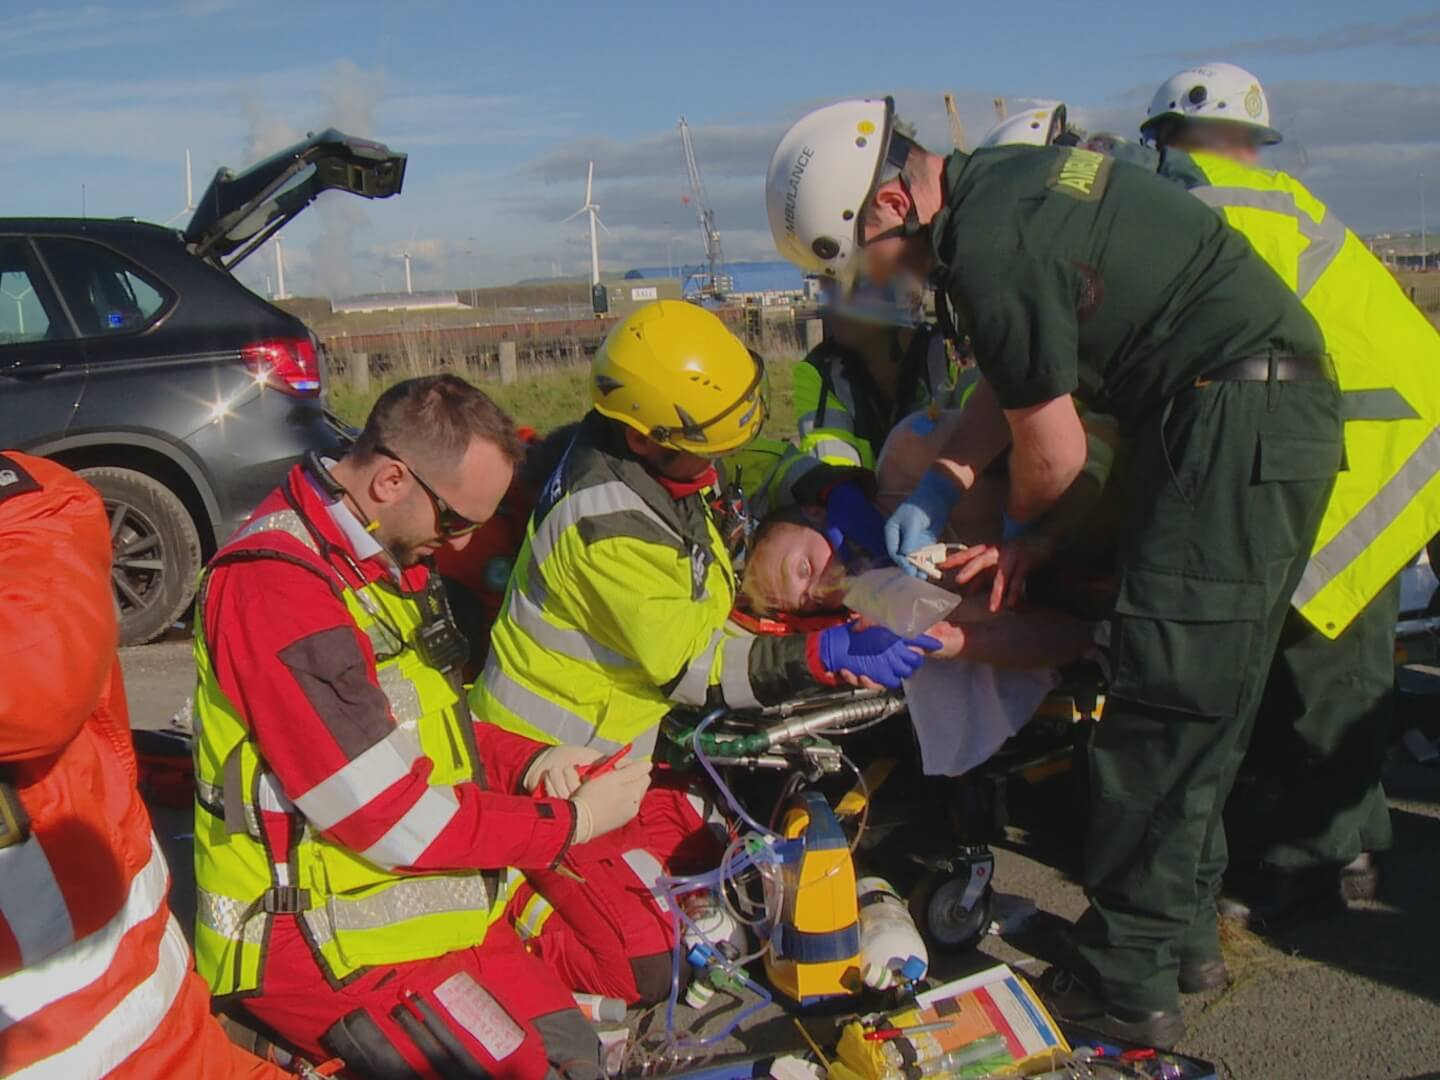 GNAAS team join the effort to save Richard Stephenson, impaled in car crash near Workington